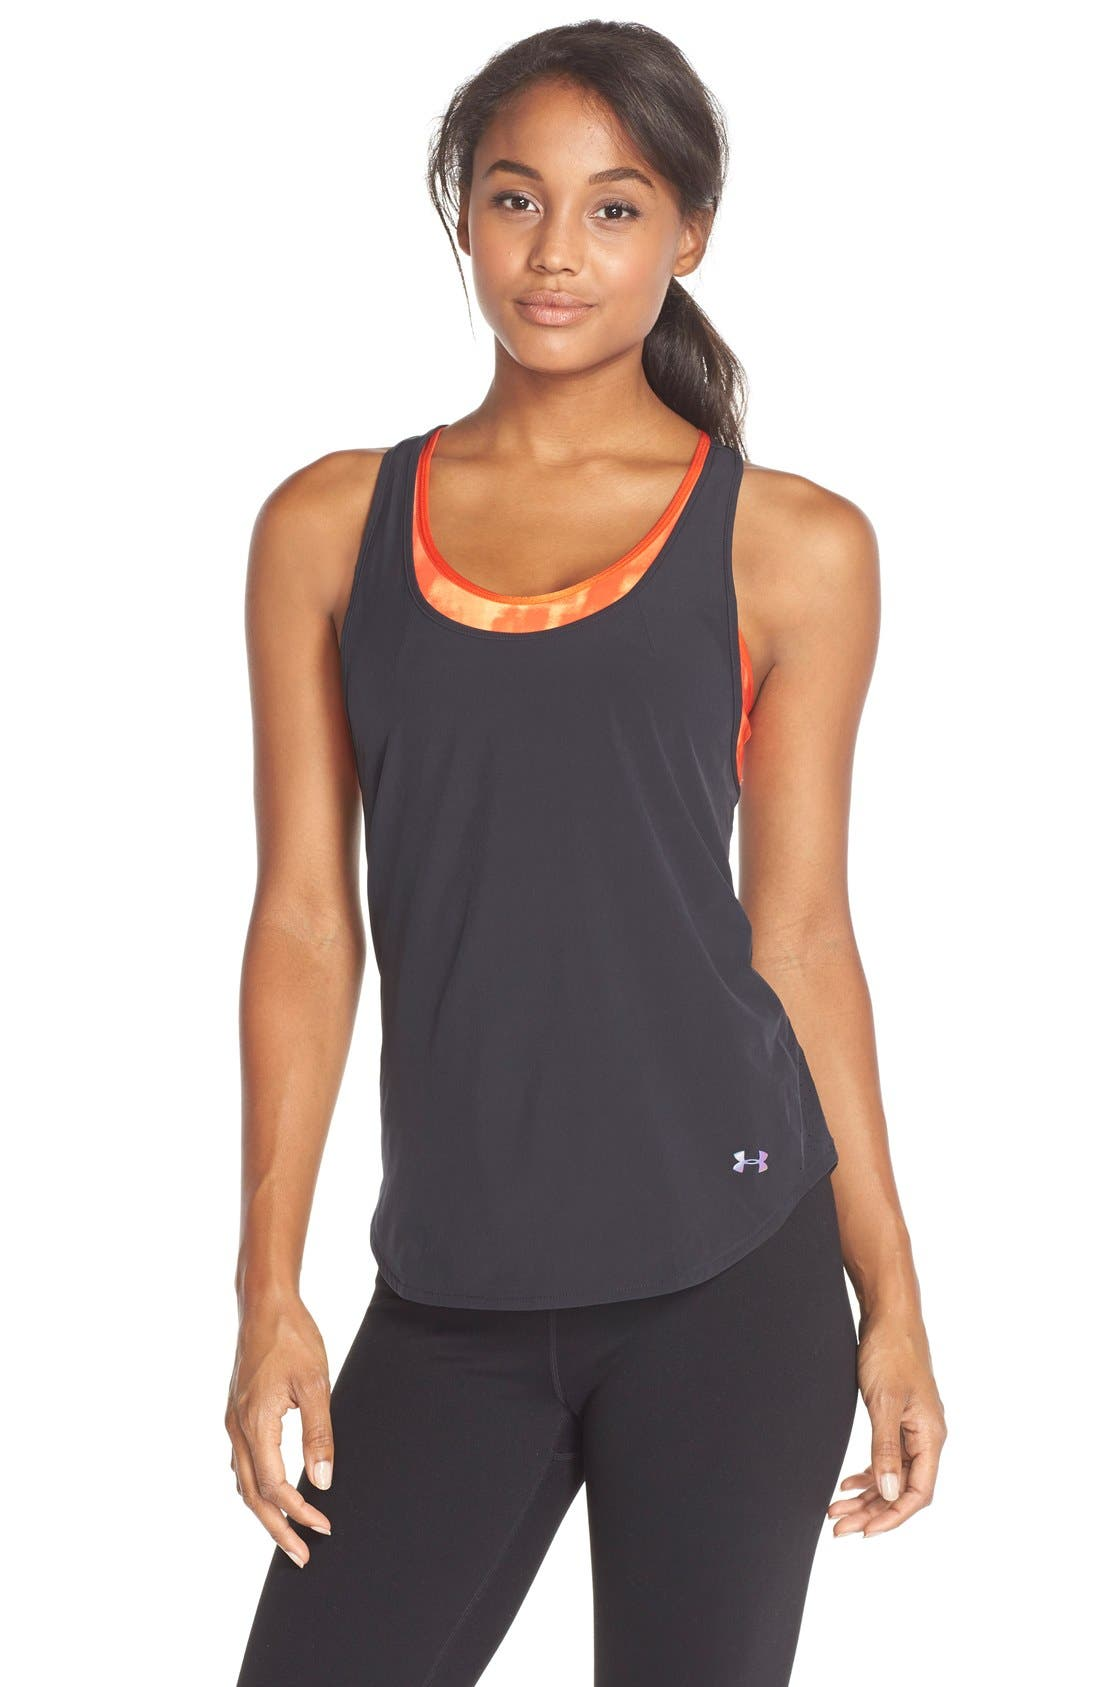 Alternate Image 1 Selected - Under Armour 'Stunner' Perforated RacerbackTank